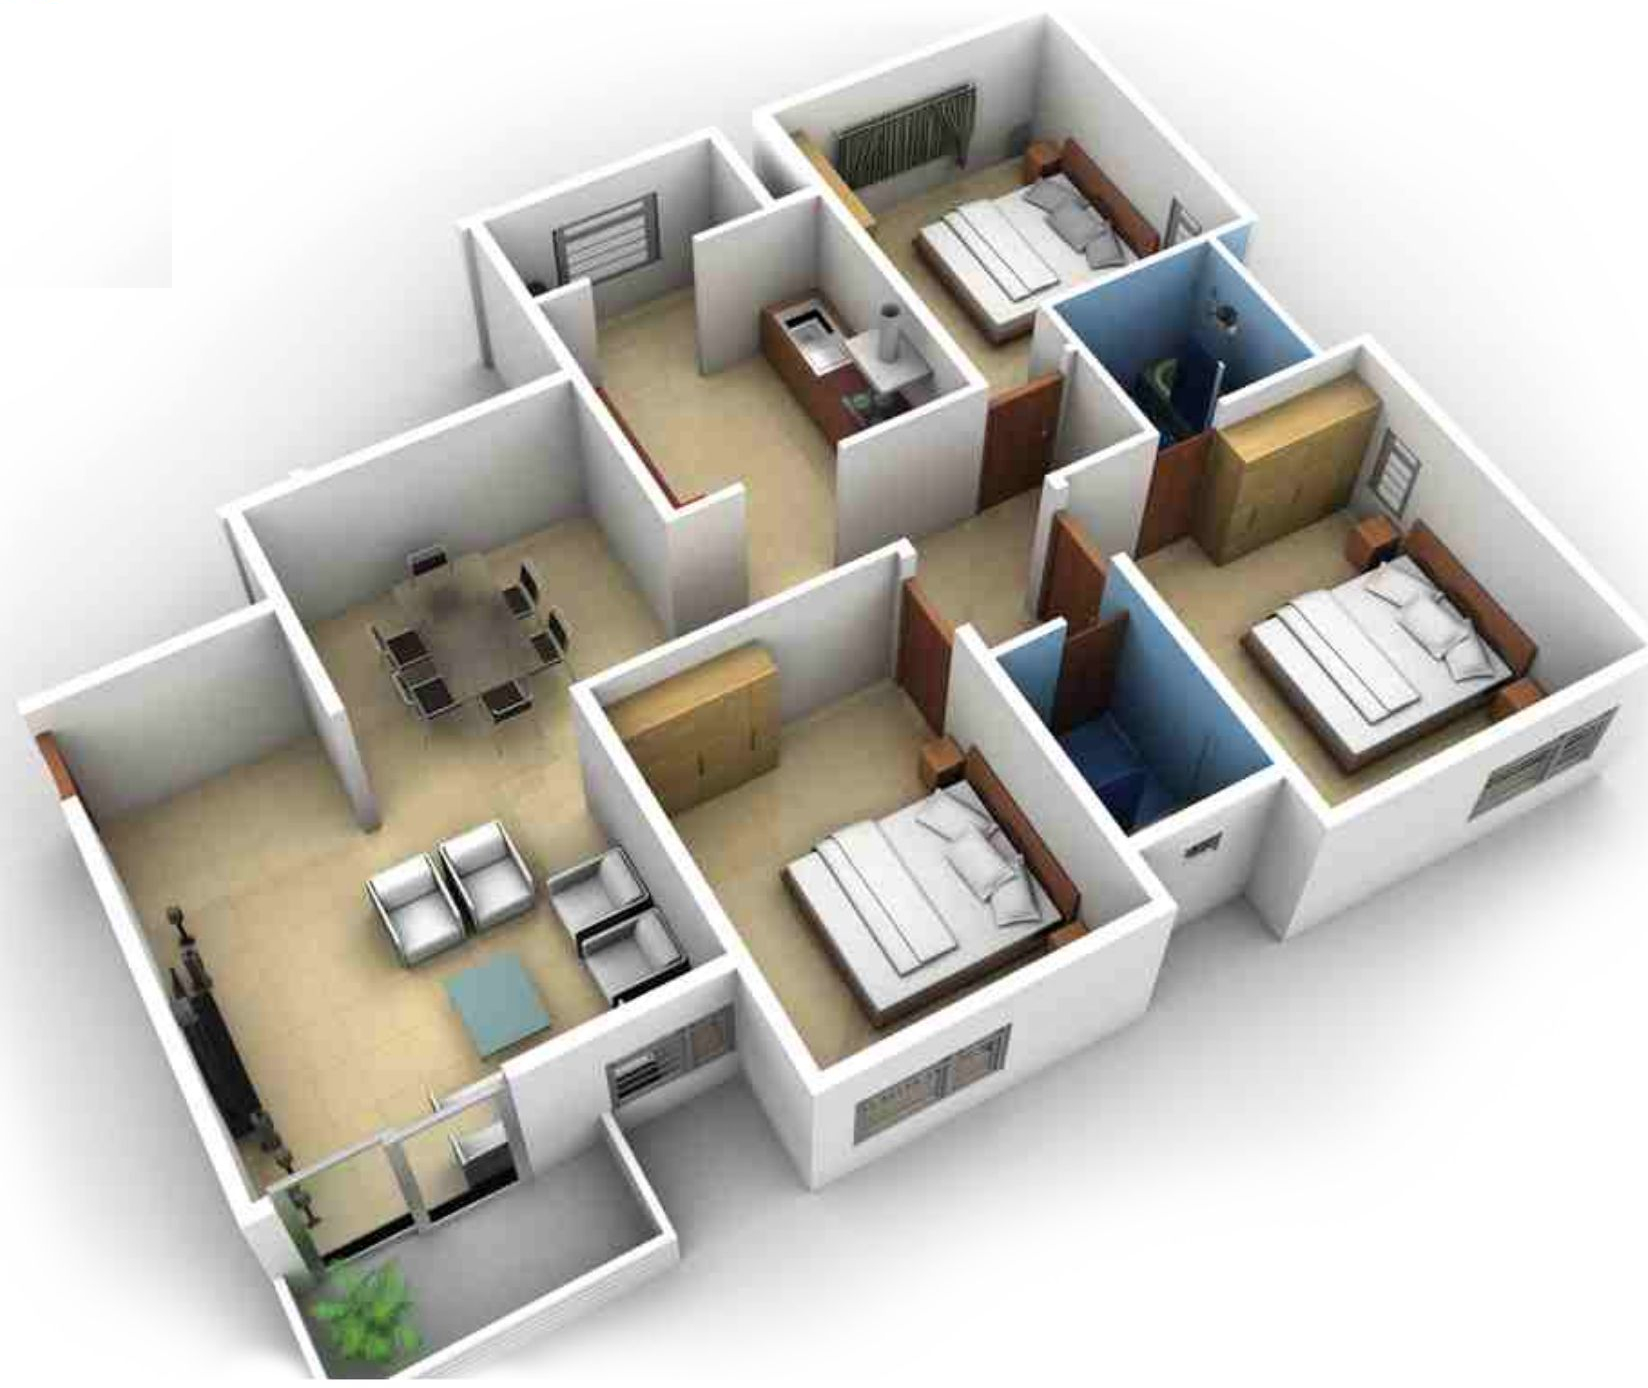 1583 Sq Ft 3 BHK 2T Apartment For Sale In Bluejay Aston